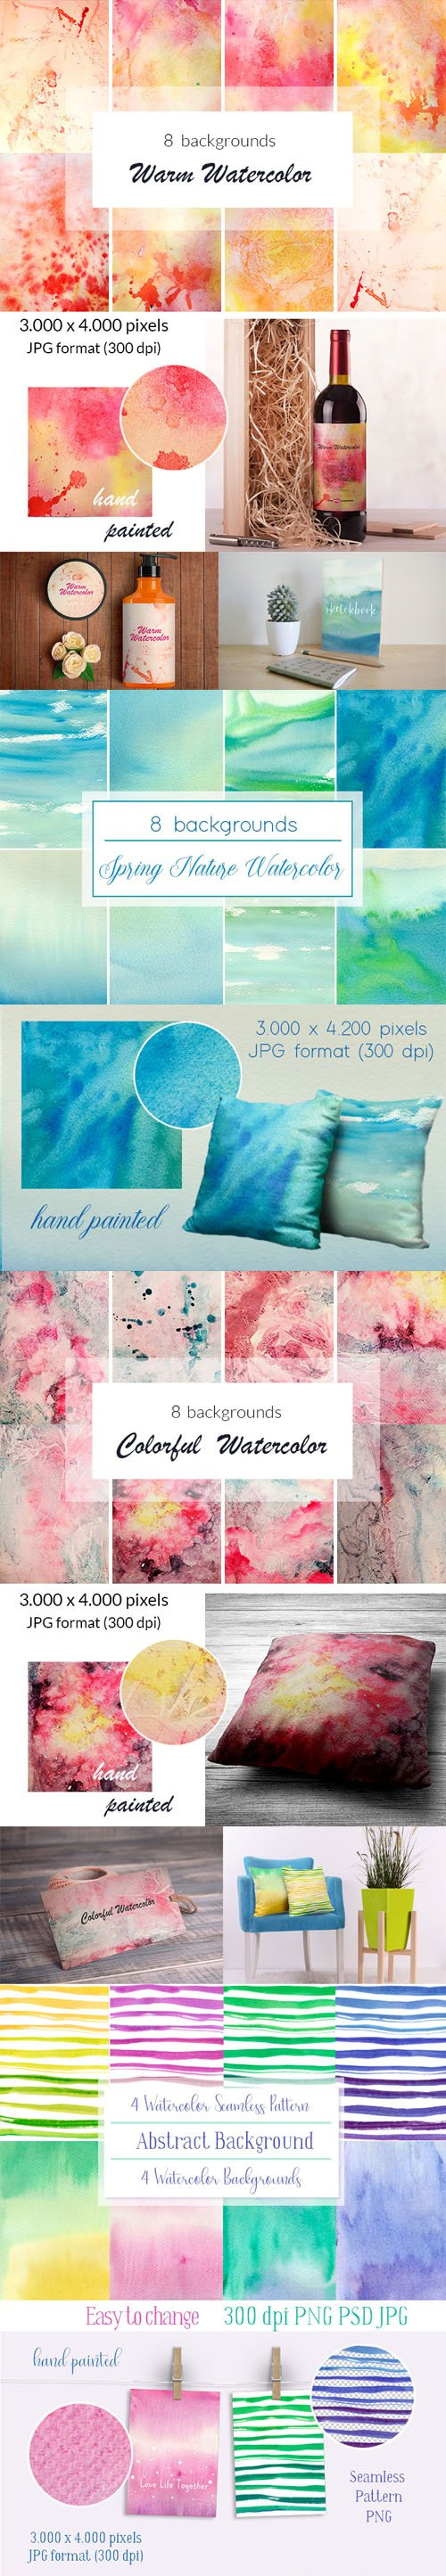 32 Watercolor Backgrounds Collection